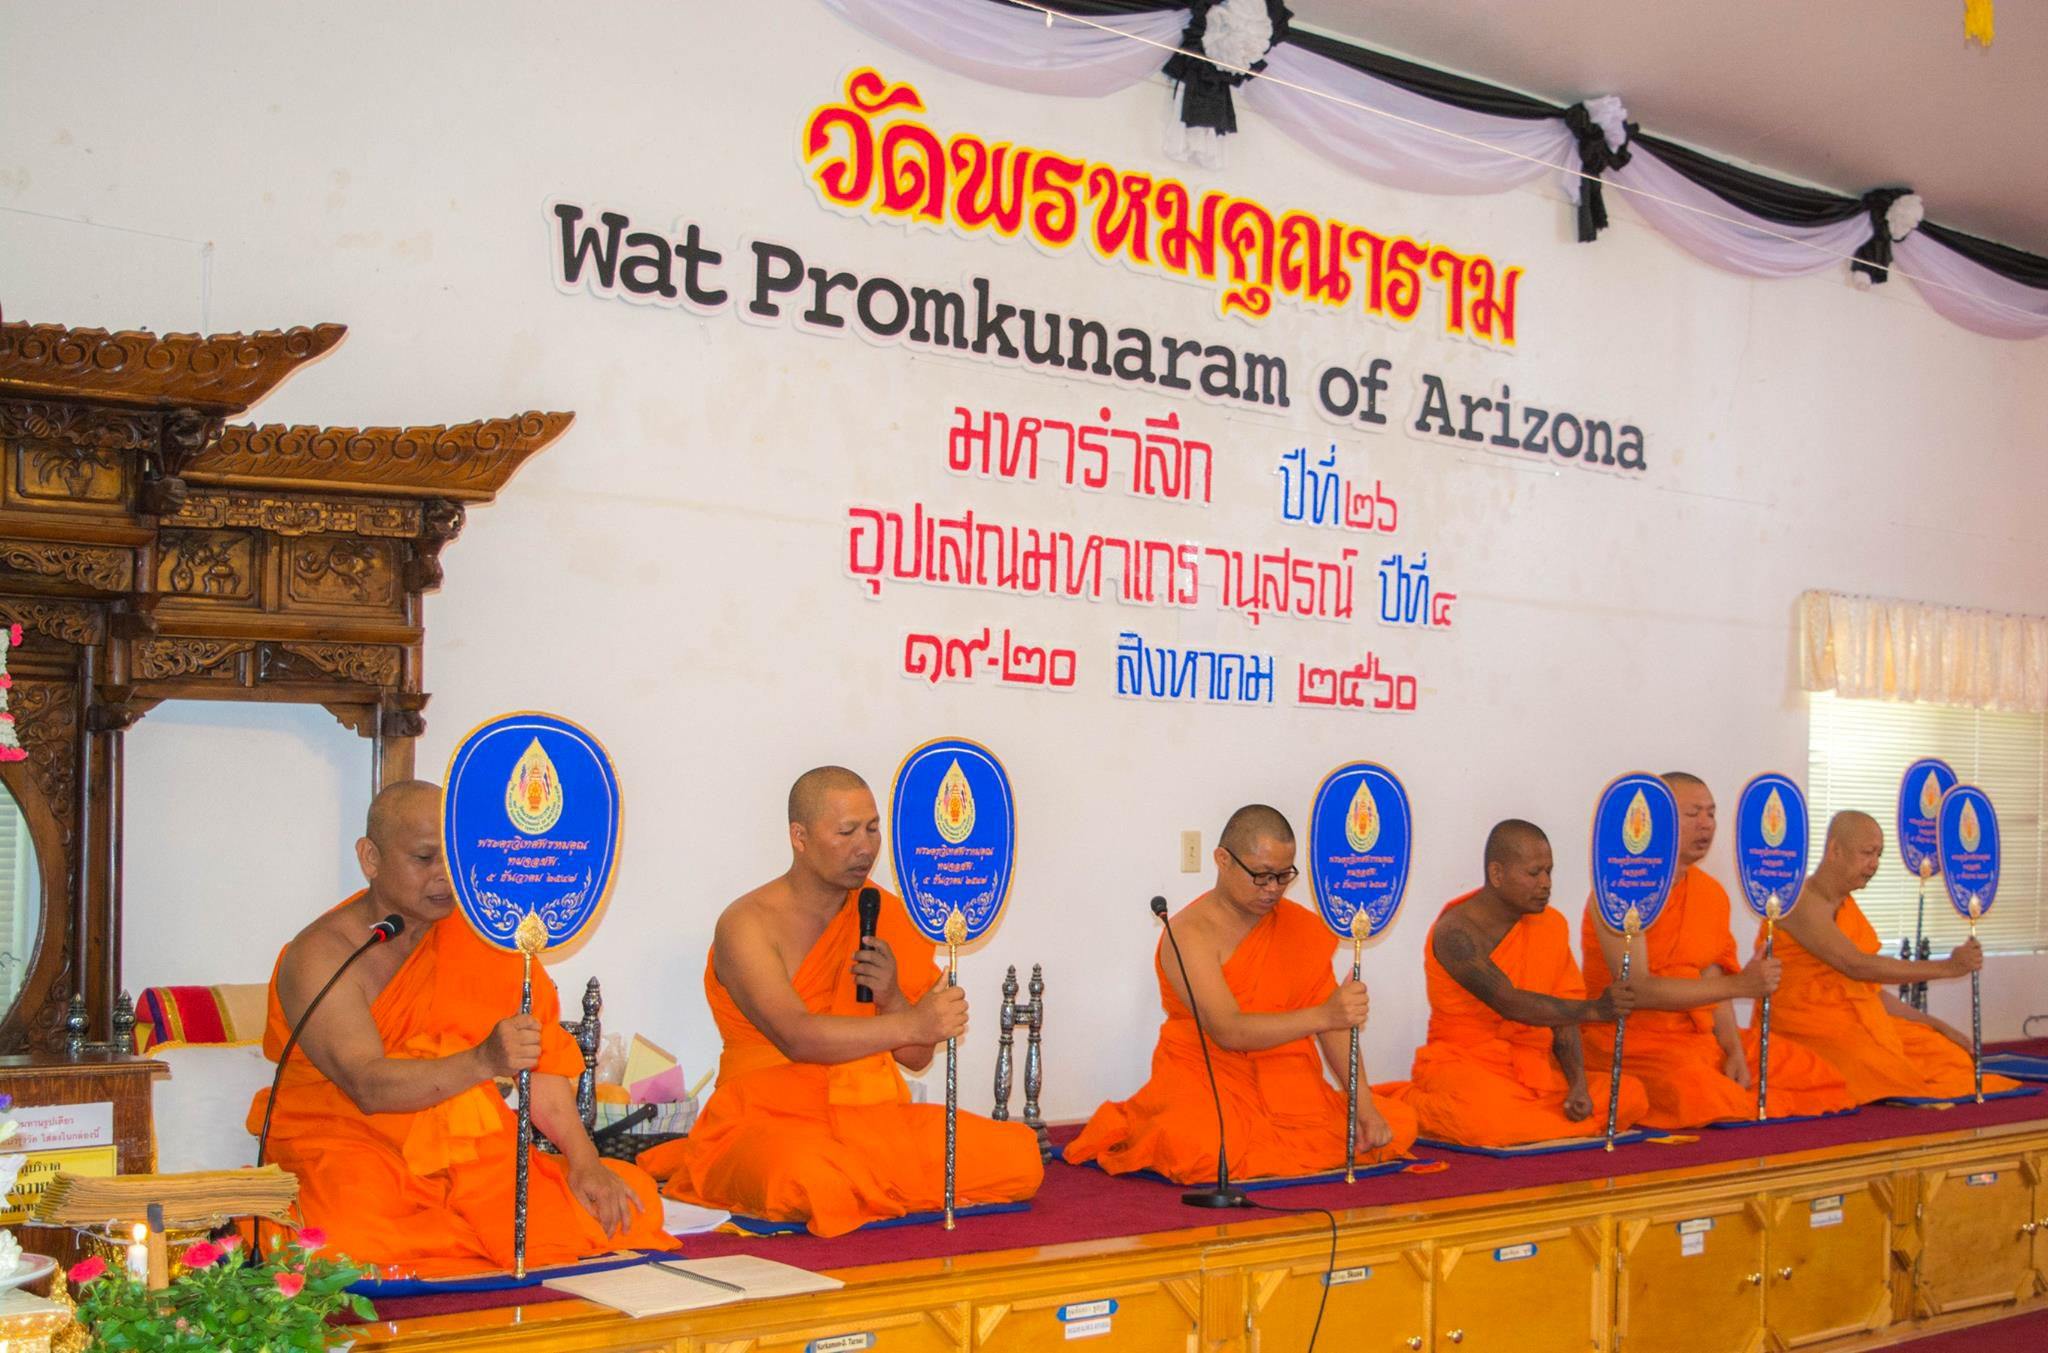 Remembering the victims of the 1991 Thai Buddhist Temple Murders in Waddell Arizona. 26 Years Later